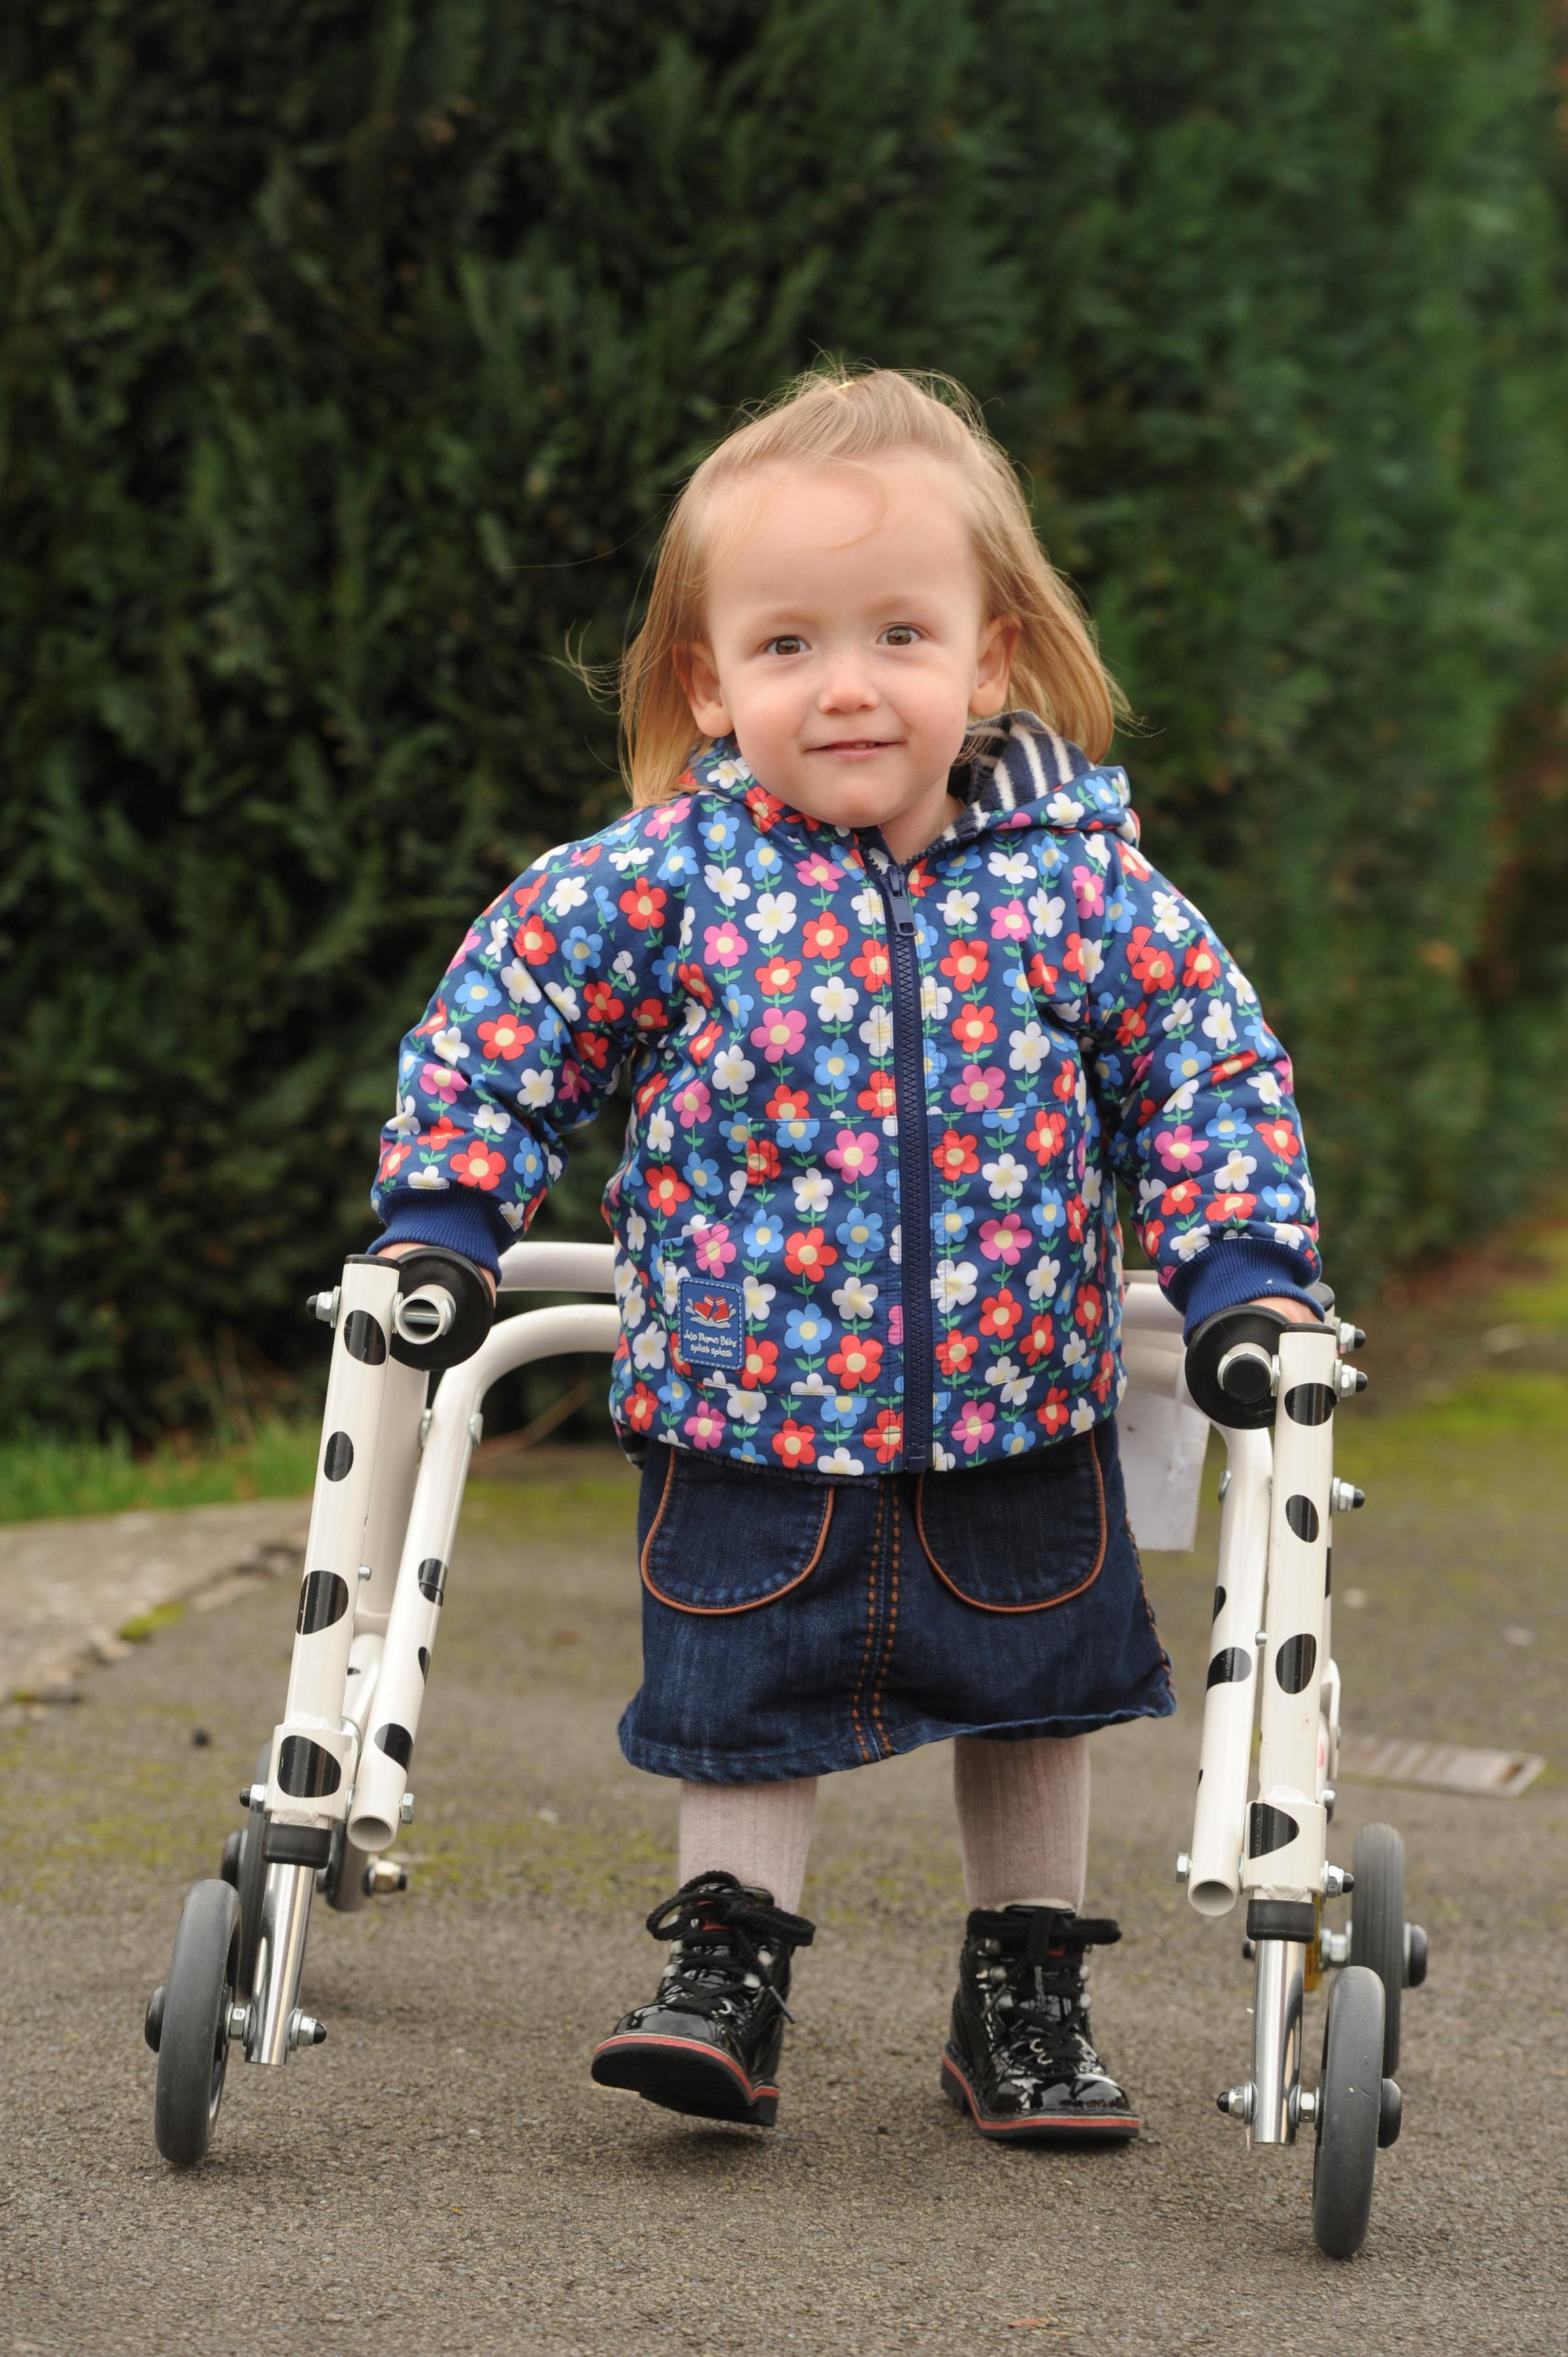 Imogen Ashwell-Lewis aged 2 from Caldicot has cerebal palsy spastic diplegia and her mum Catherine Ashwell-Rice is fundraising to raise £40,000 to fund a pioneering operation (3779288)